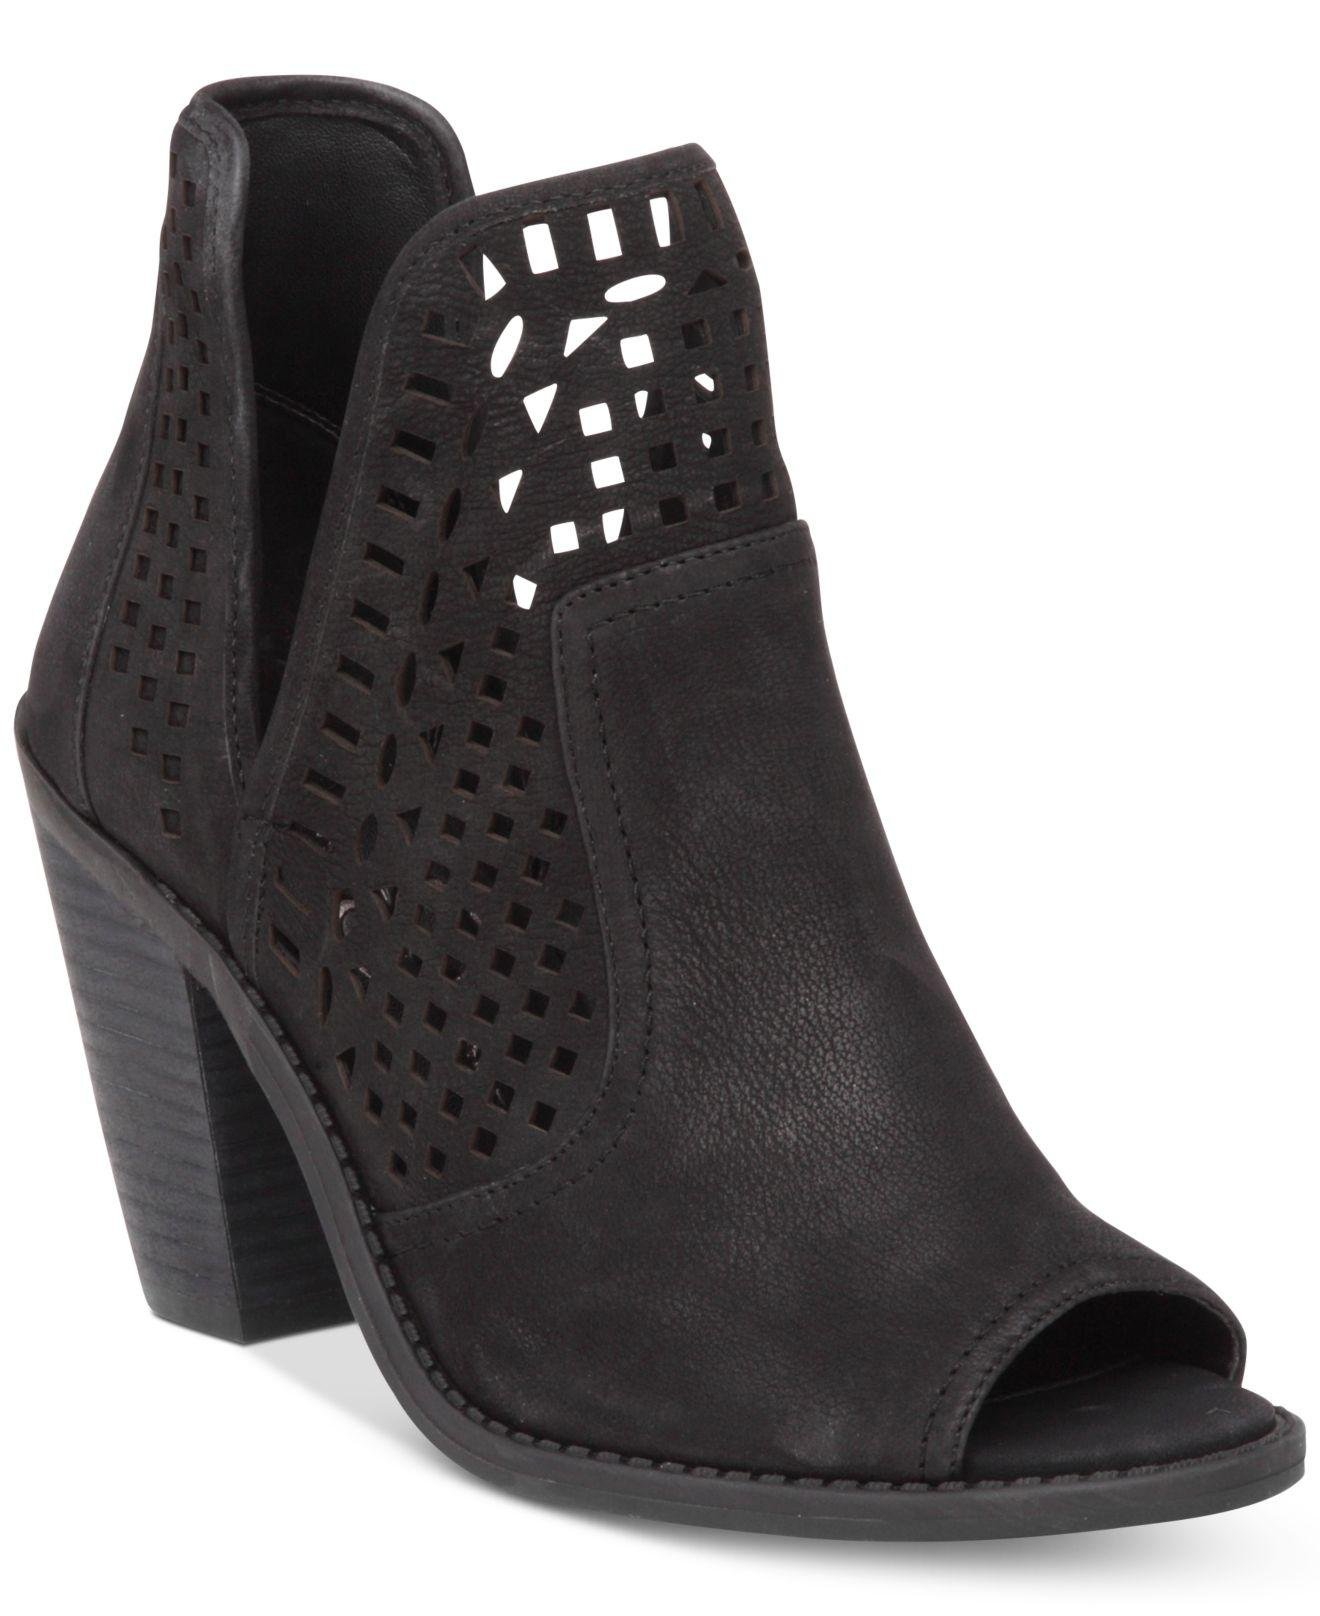 The Bobbie Black Cutout Ankle Booties are for babes that walk with confidence! These little cuties boast an almond-toe upper, sleek vegan leather in the front and pierced vegan leather at back.